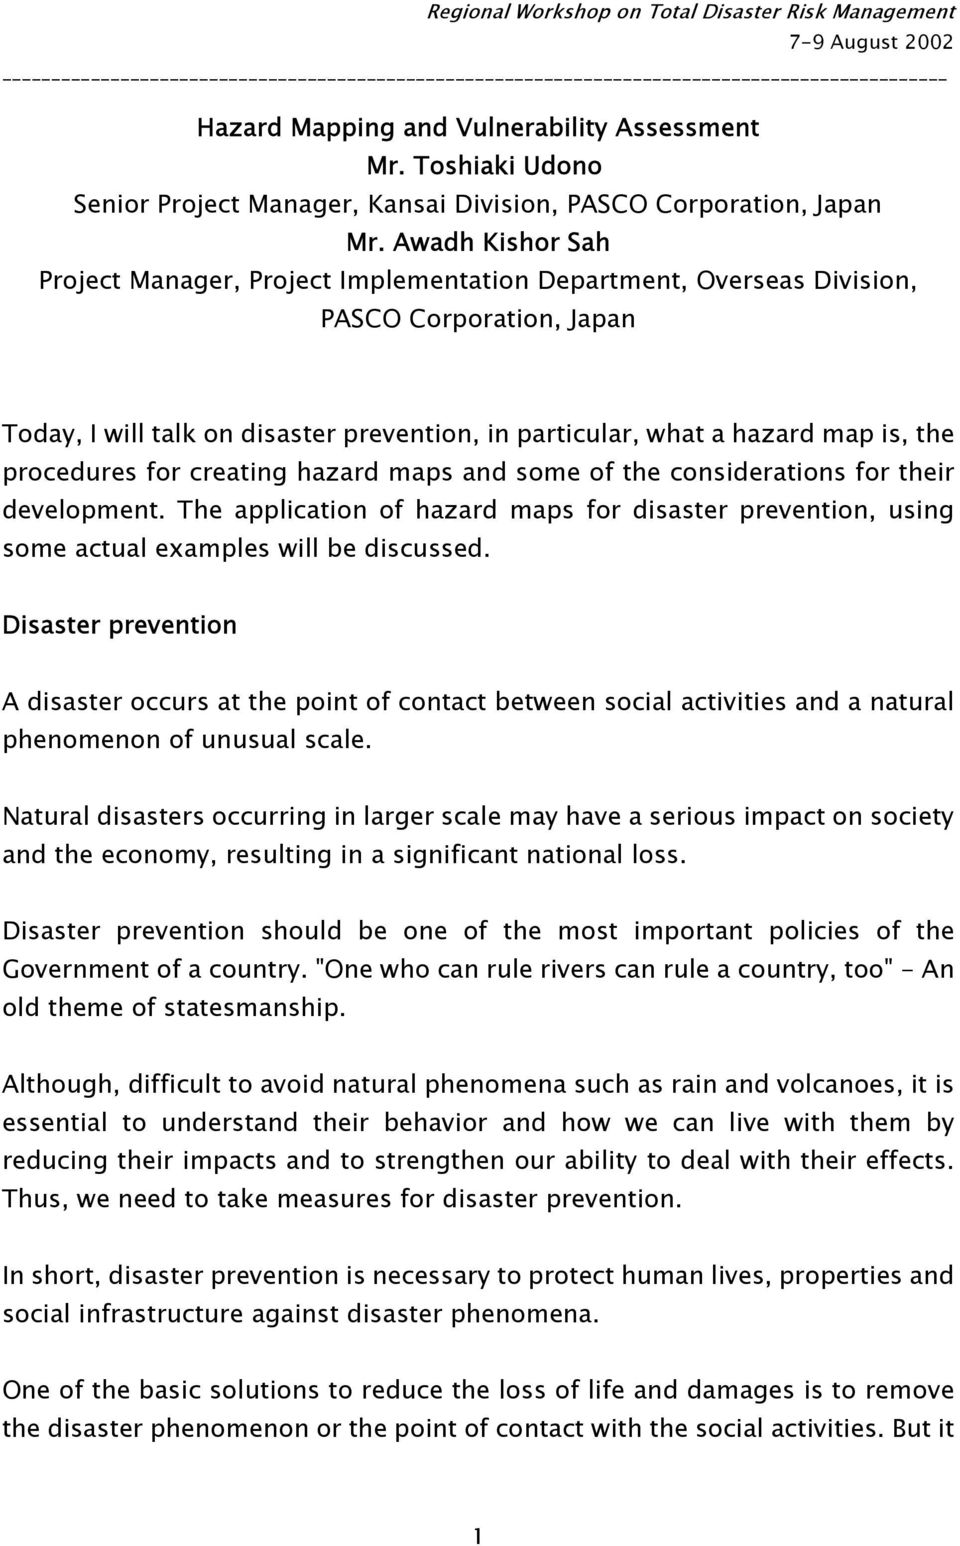 procedures for creating hazard maps and some of the considerations for their development. The application of hazard maps for disaster prevention, using some actual examples will be discussed.